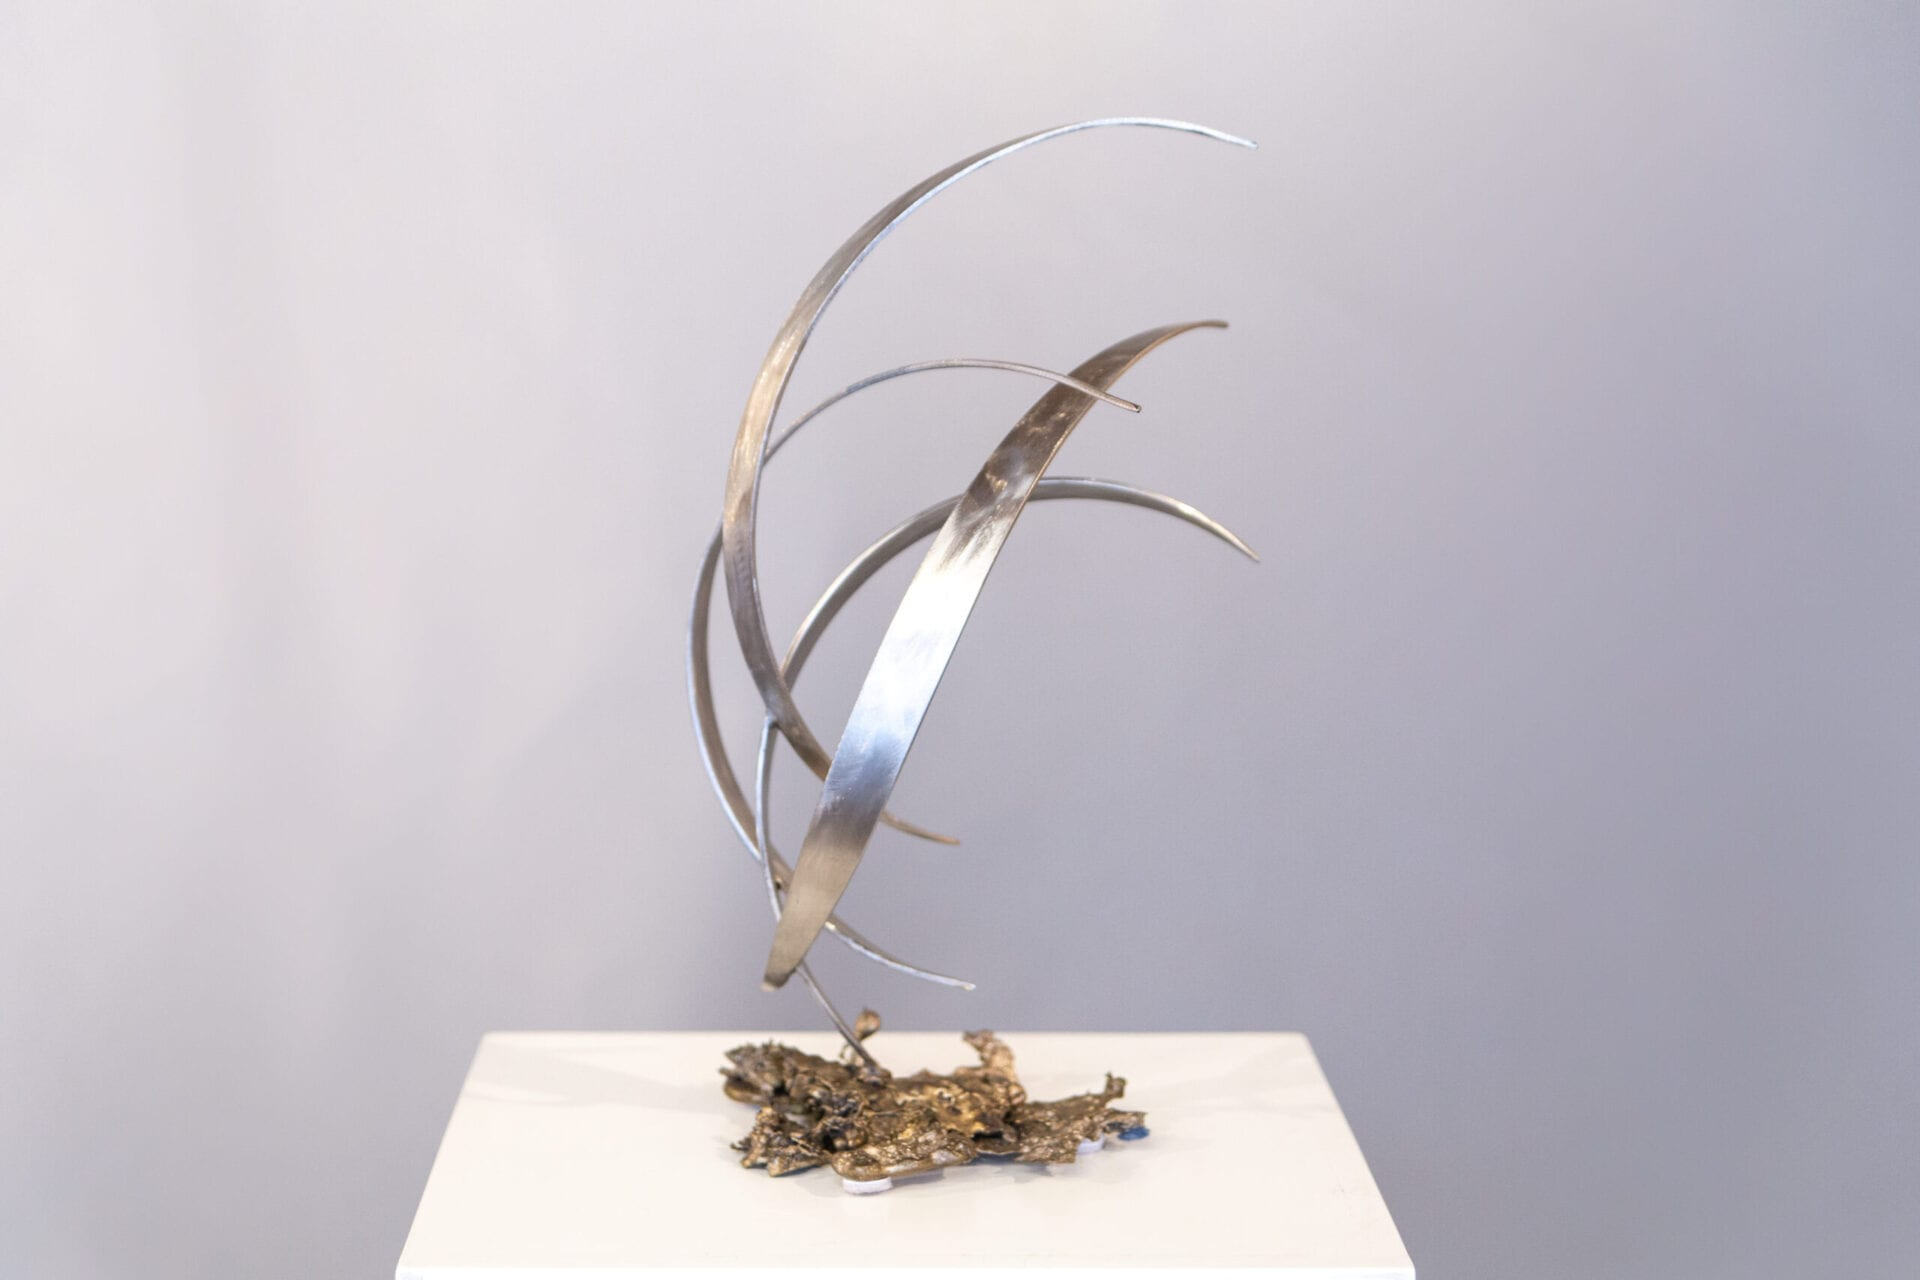 Rising from the Ashes | Bruce Niemi | 17 x 10 x 7"